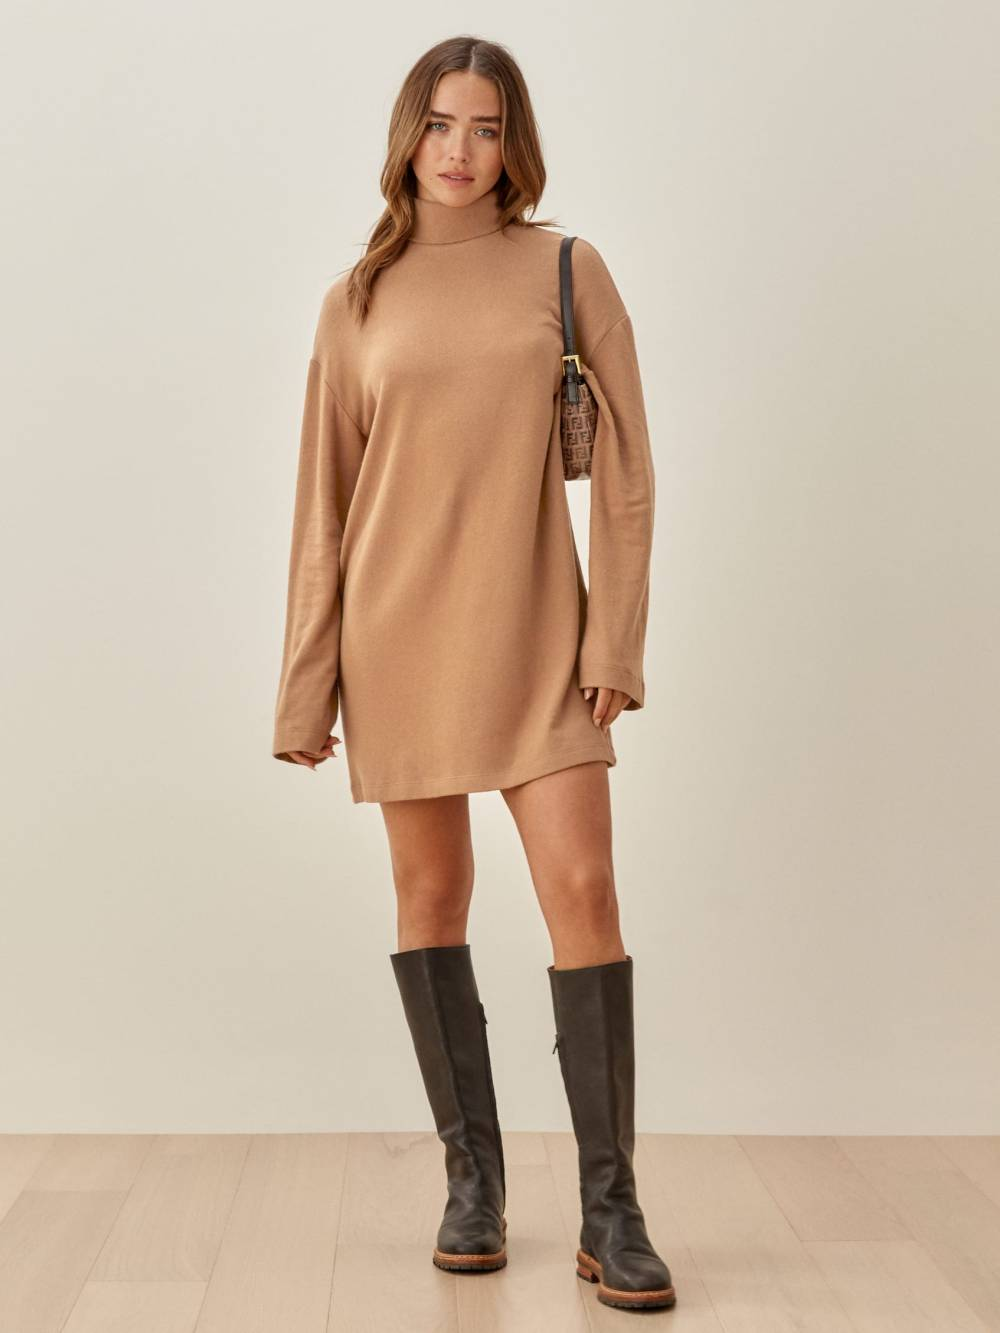 reformation affordable sustainable sweater dress